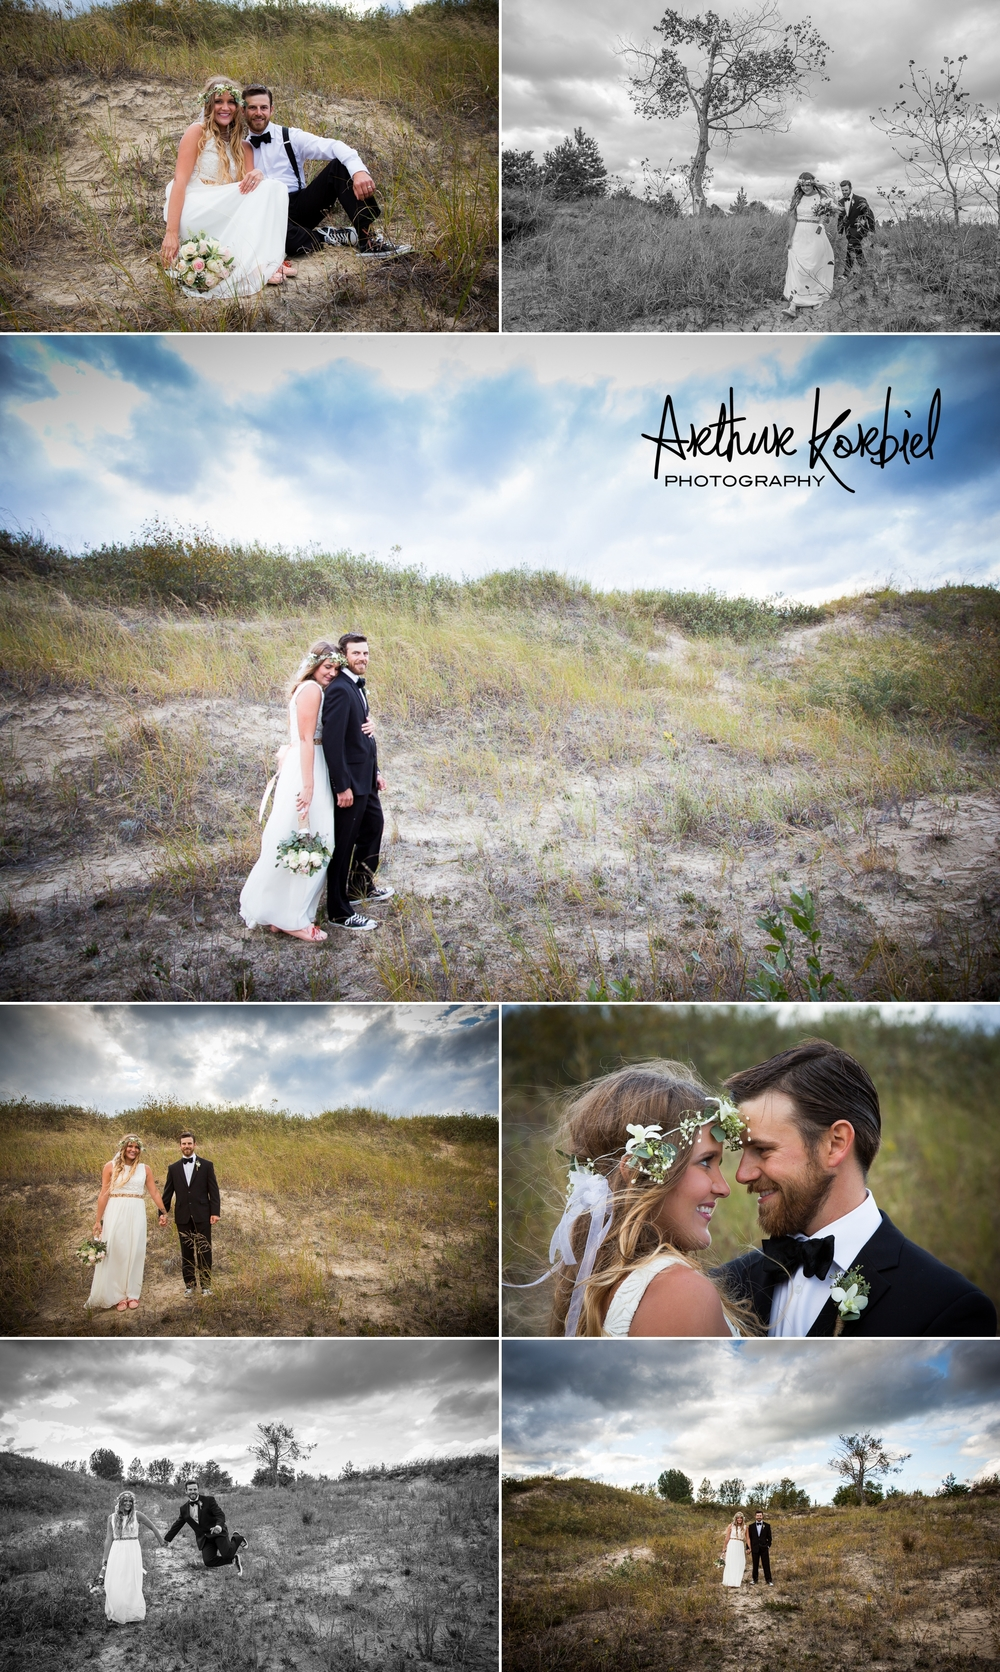 Arthur Korbiel Photography - London Engagement Photographer - Sauble Beach Barn Wedding - Samantha & Dan_010.jpg